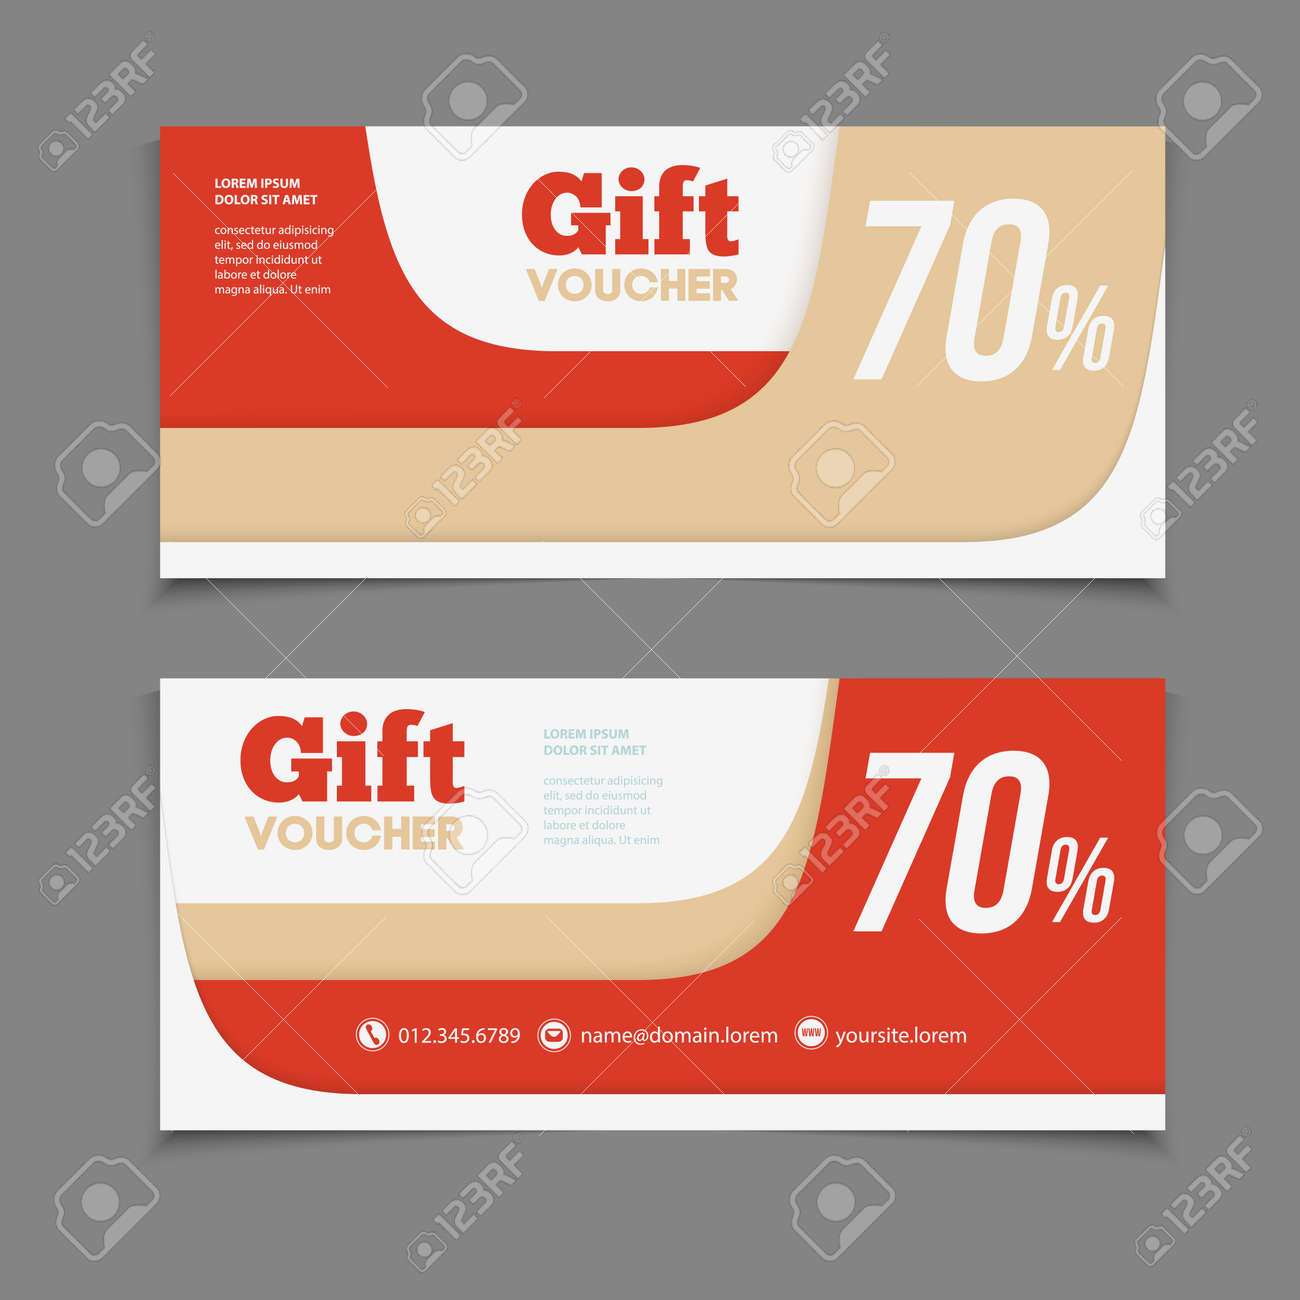 Two Coupon Voucher Design. Gift Voucher Template With Amount Of Discount  And Contact Information.  Coupon Voucher Template